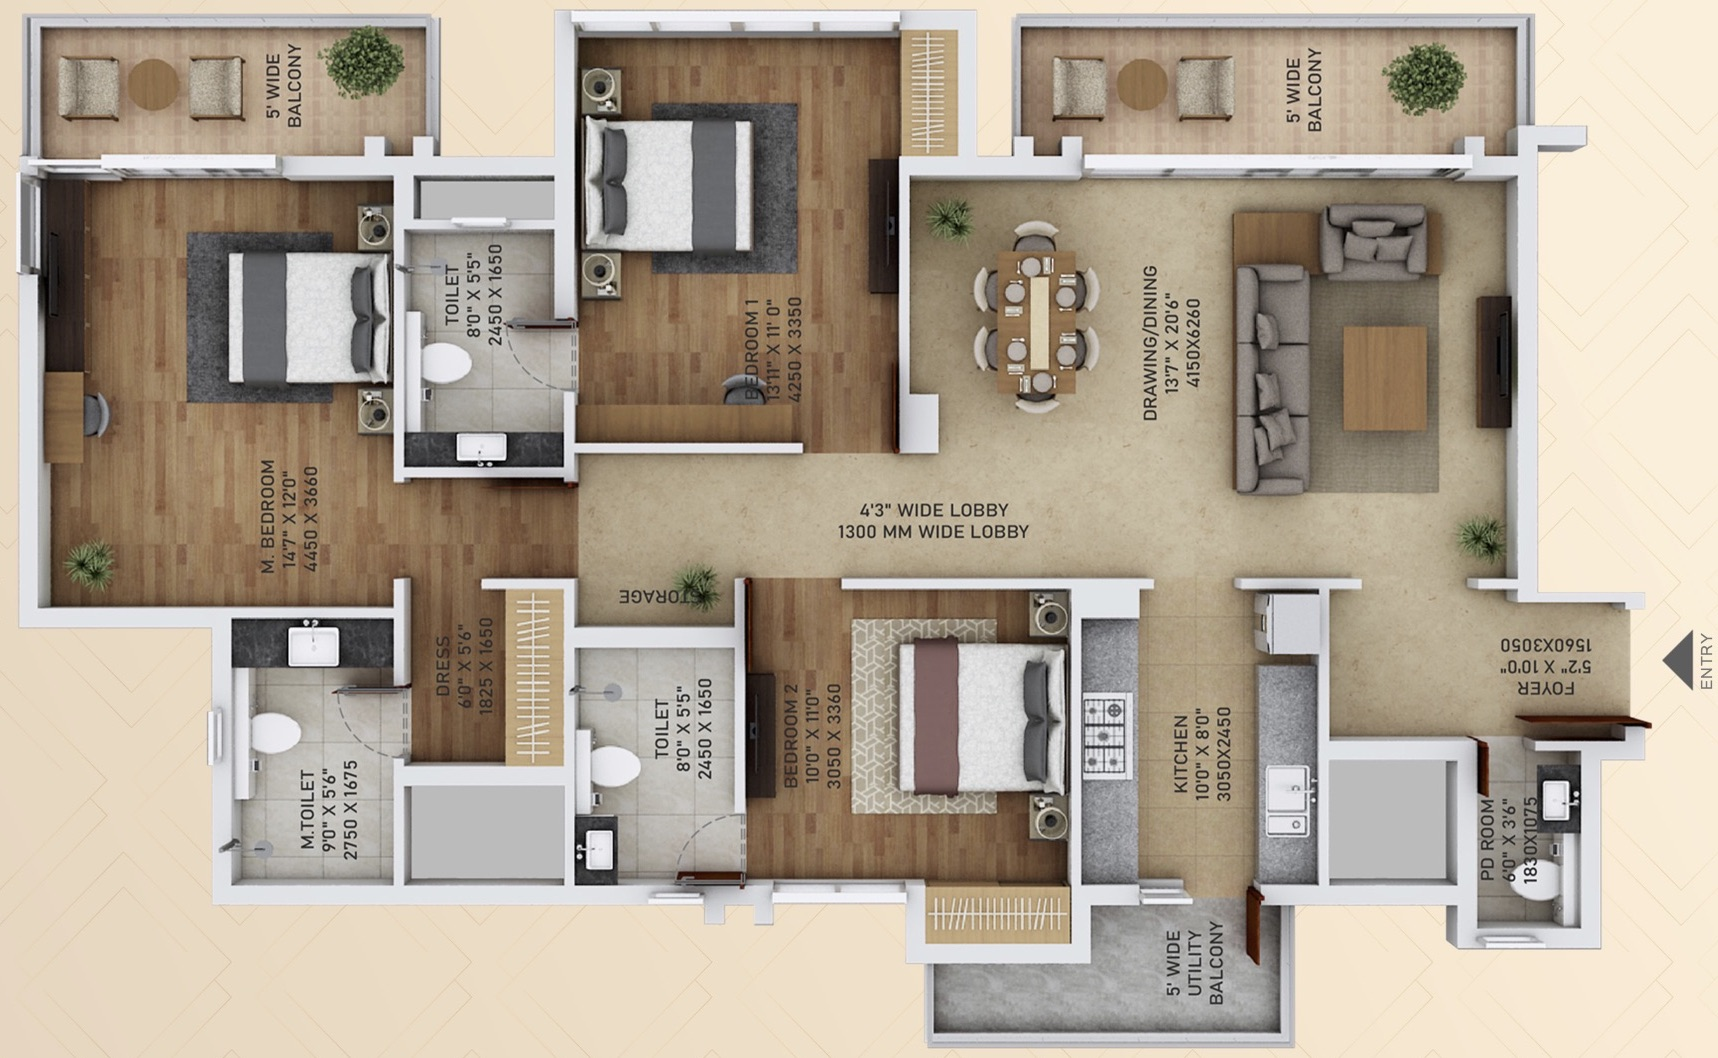 3 BHK apartments in Sector 152 Noida